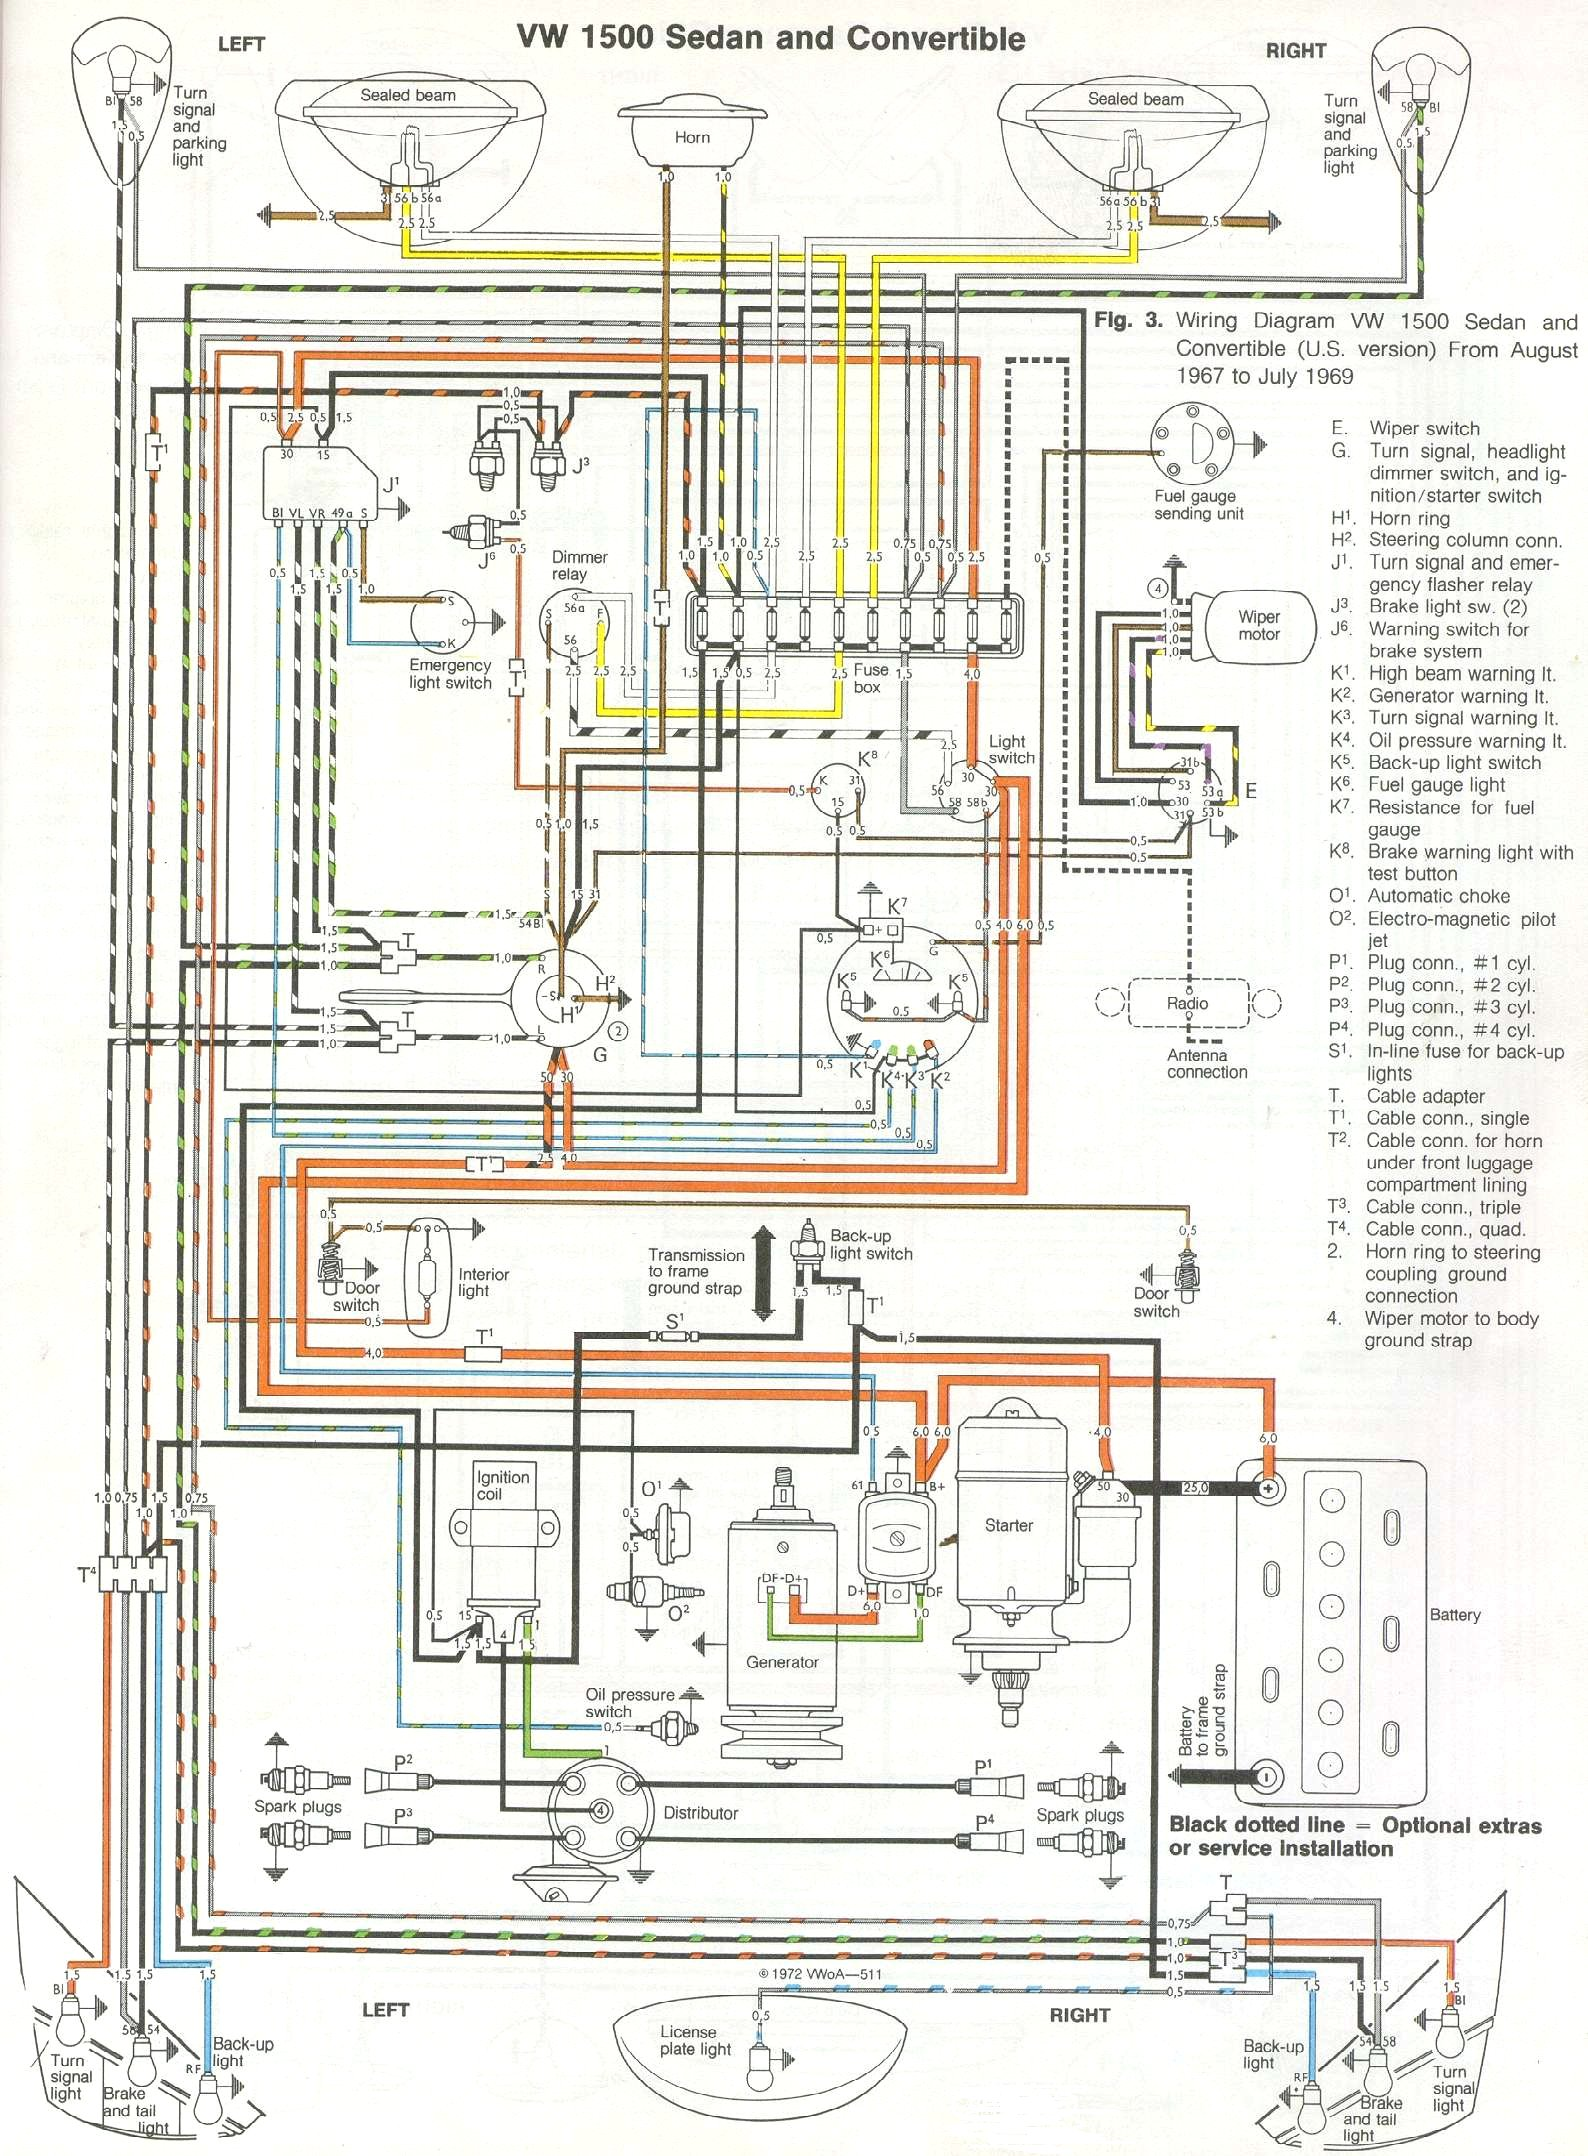 Bus Usa moreover Bug in addition Maxresdefault in addition Transporter Usa From August also Bug. on 1973 super beetle wiring diagram